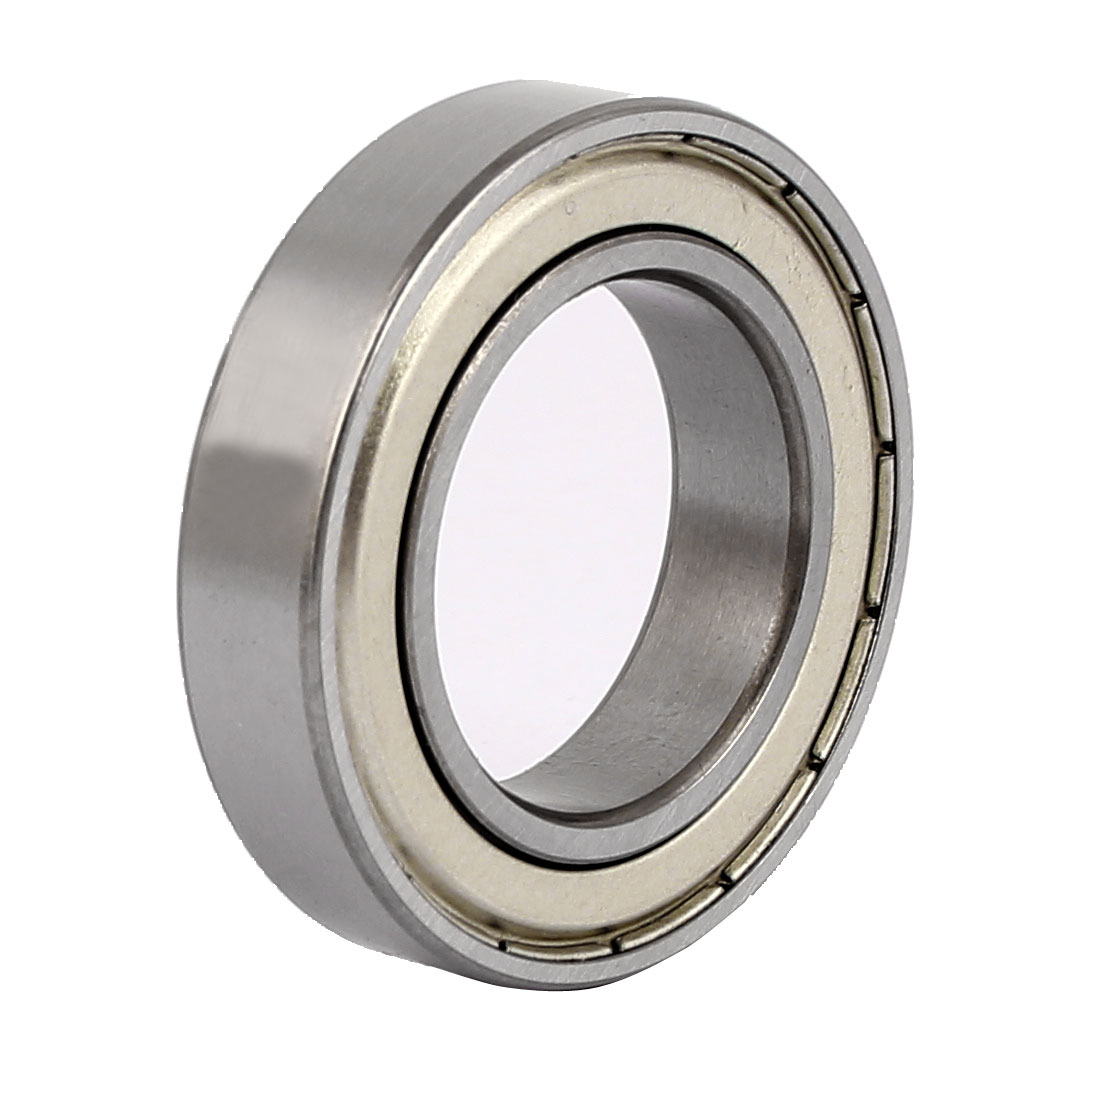 ZZ6905 Double Shielded Deep Groove Ball Bearing 42mmx25mmx7mm